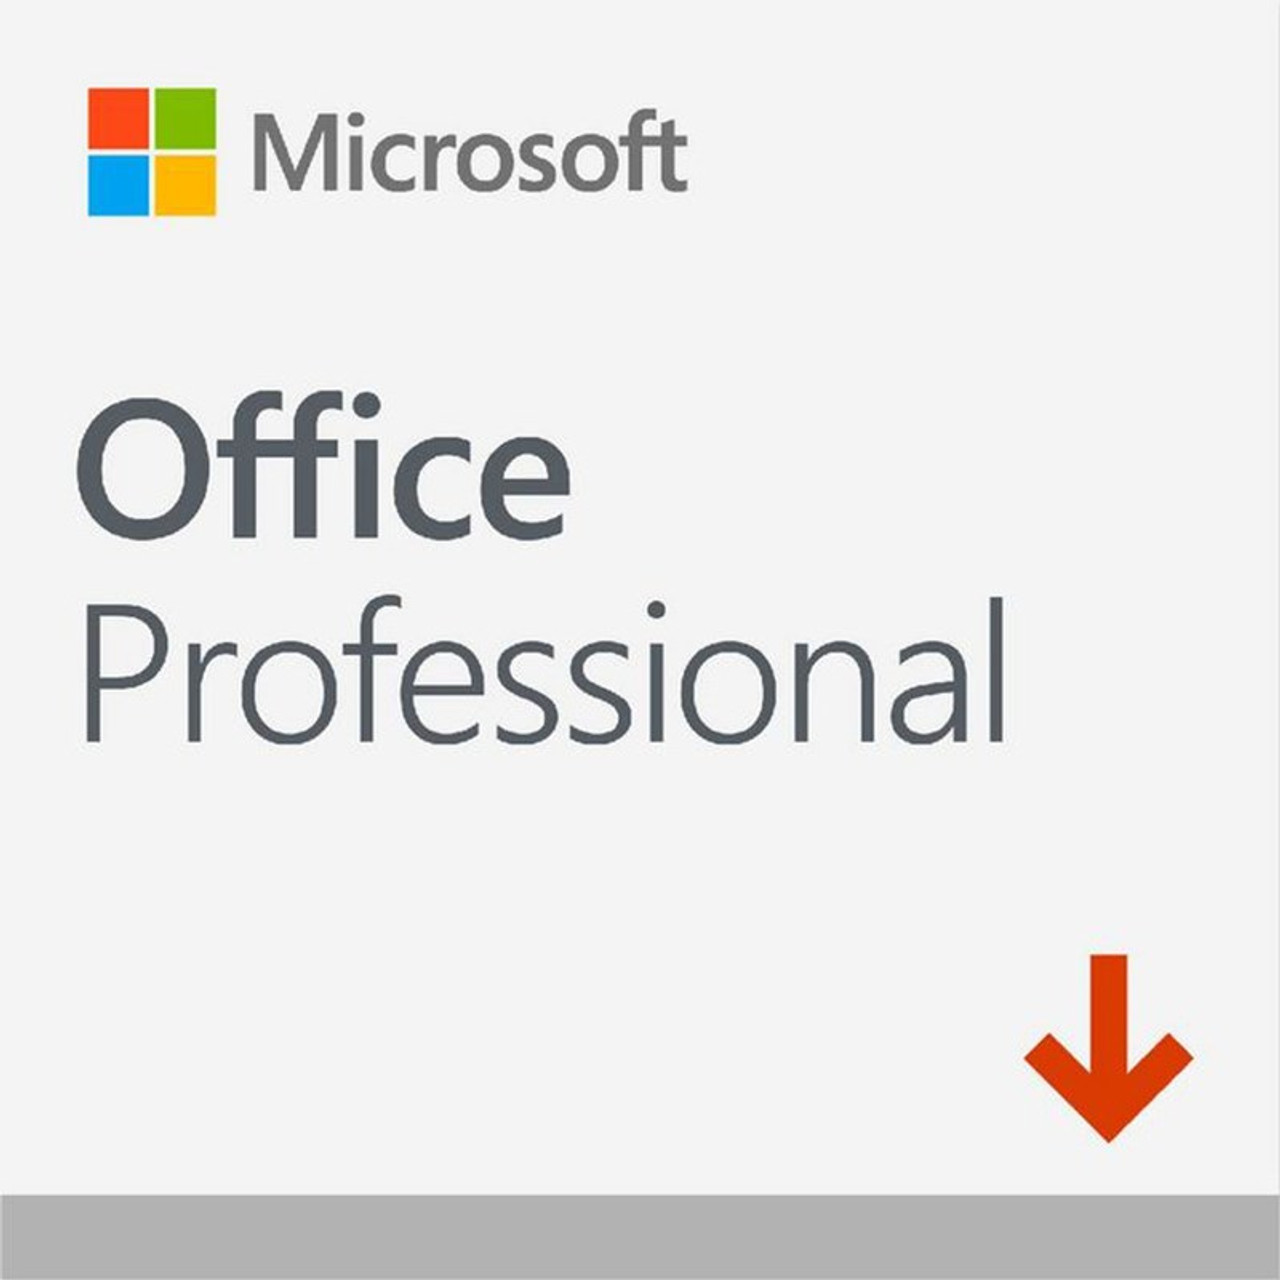 Image for Microsoft Office 2019 Professional - Digital Download CX Computer Superstore